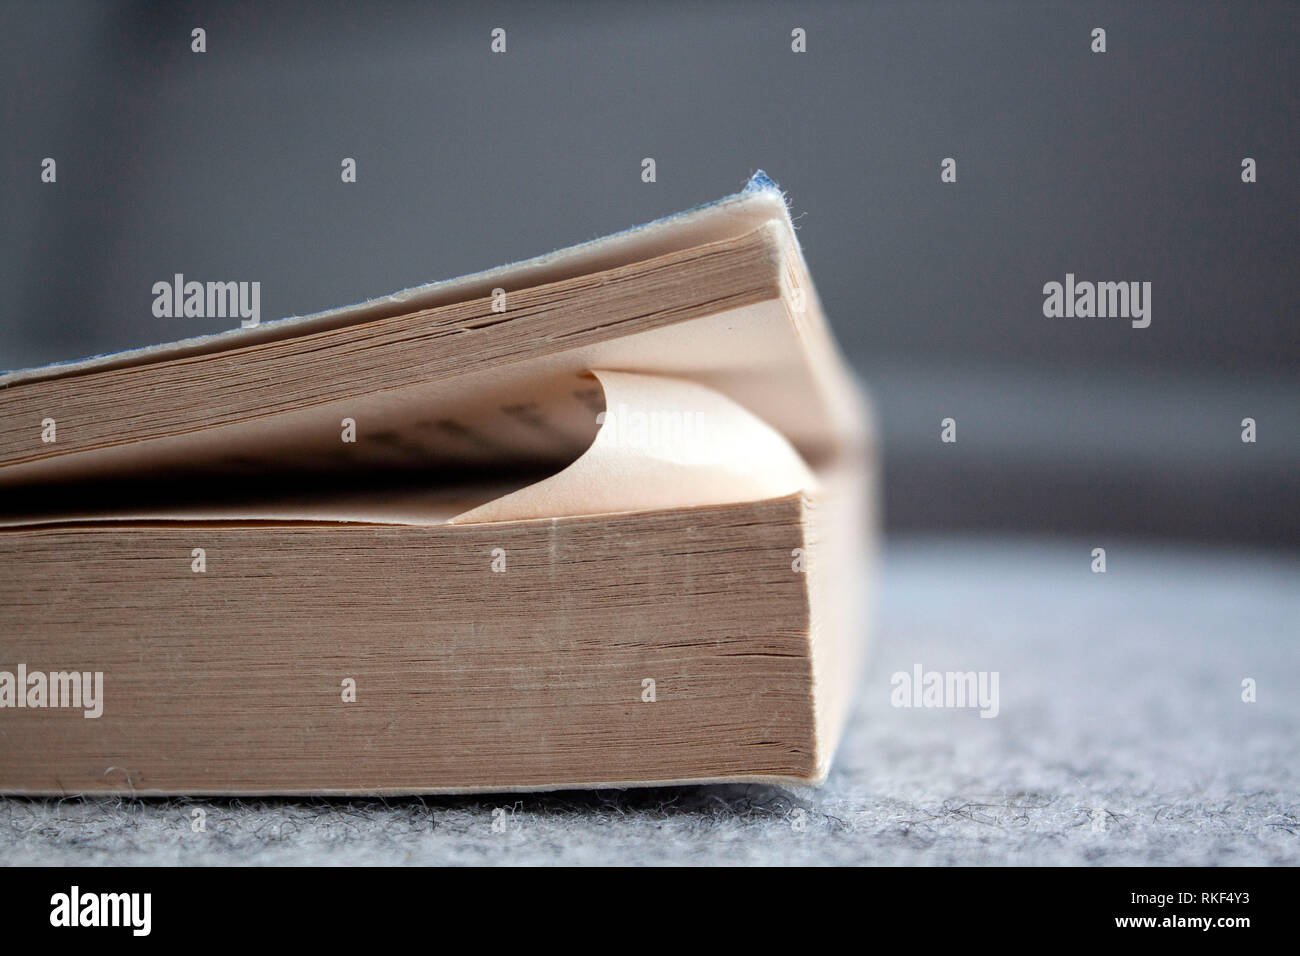 A dog eared paperback on a light background. - Stock Image